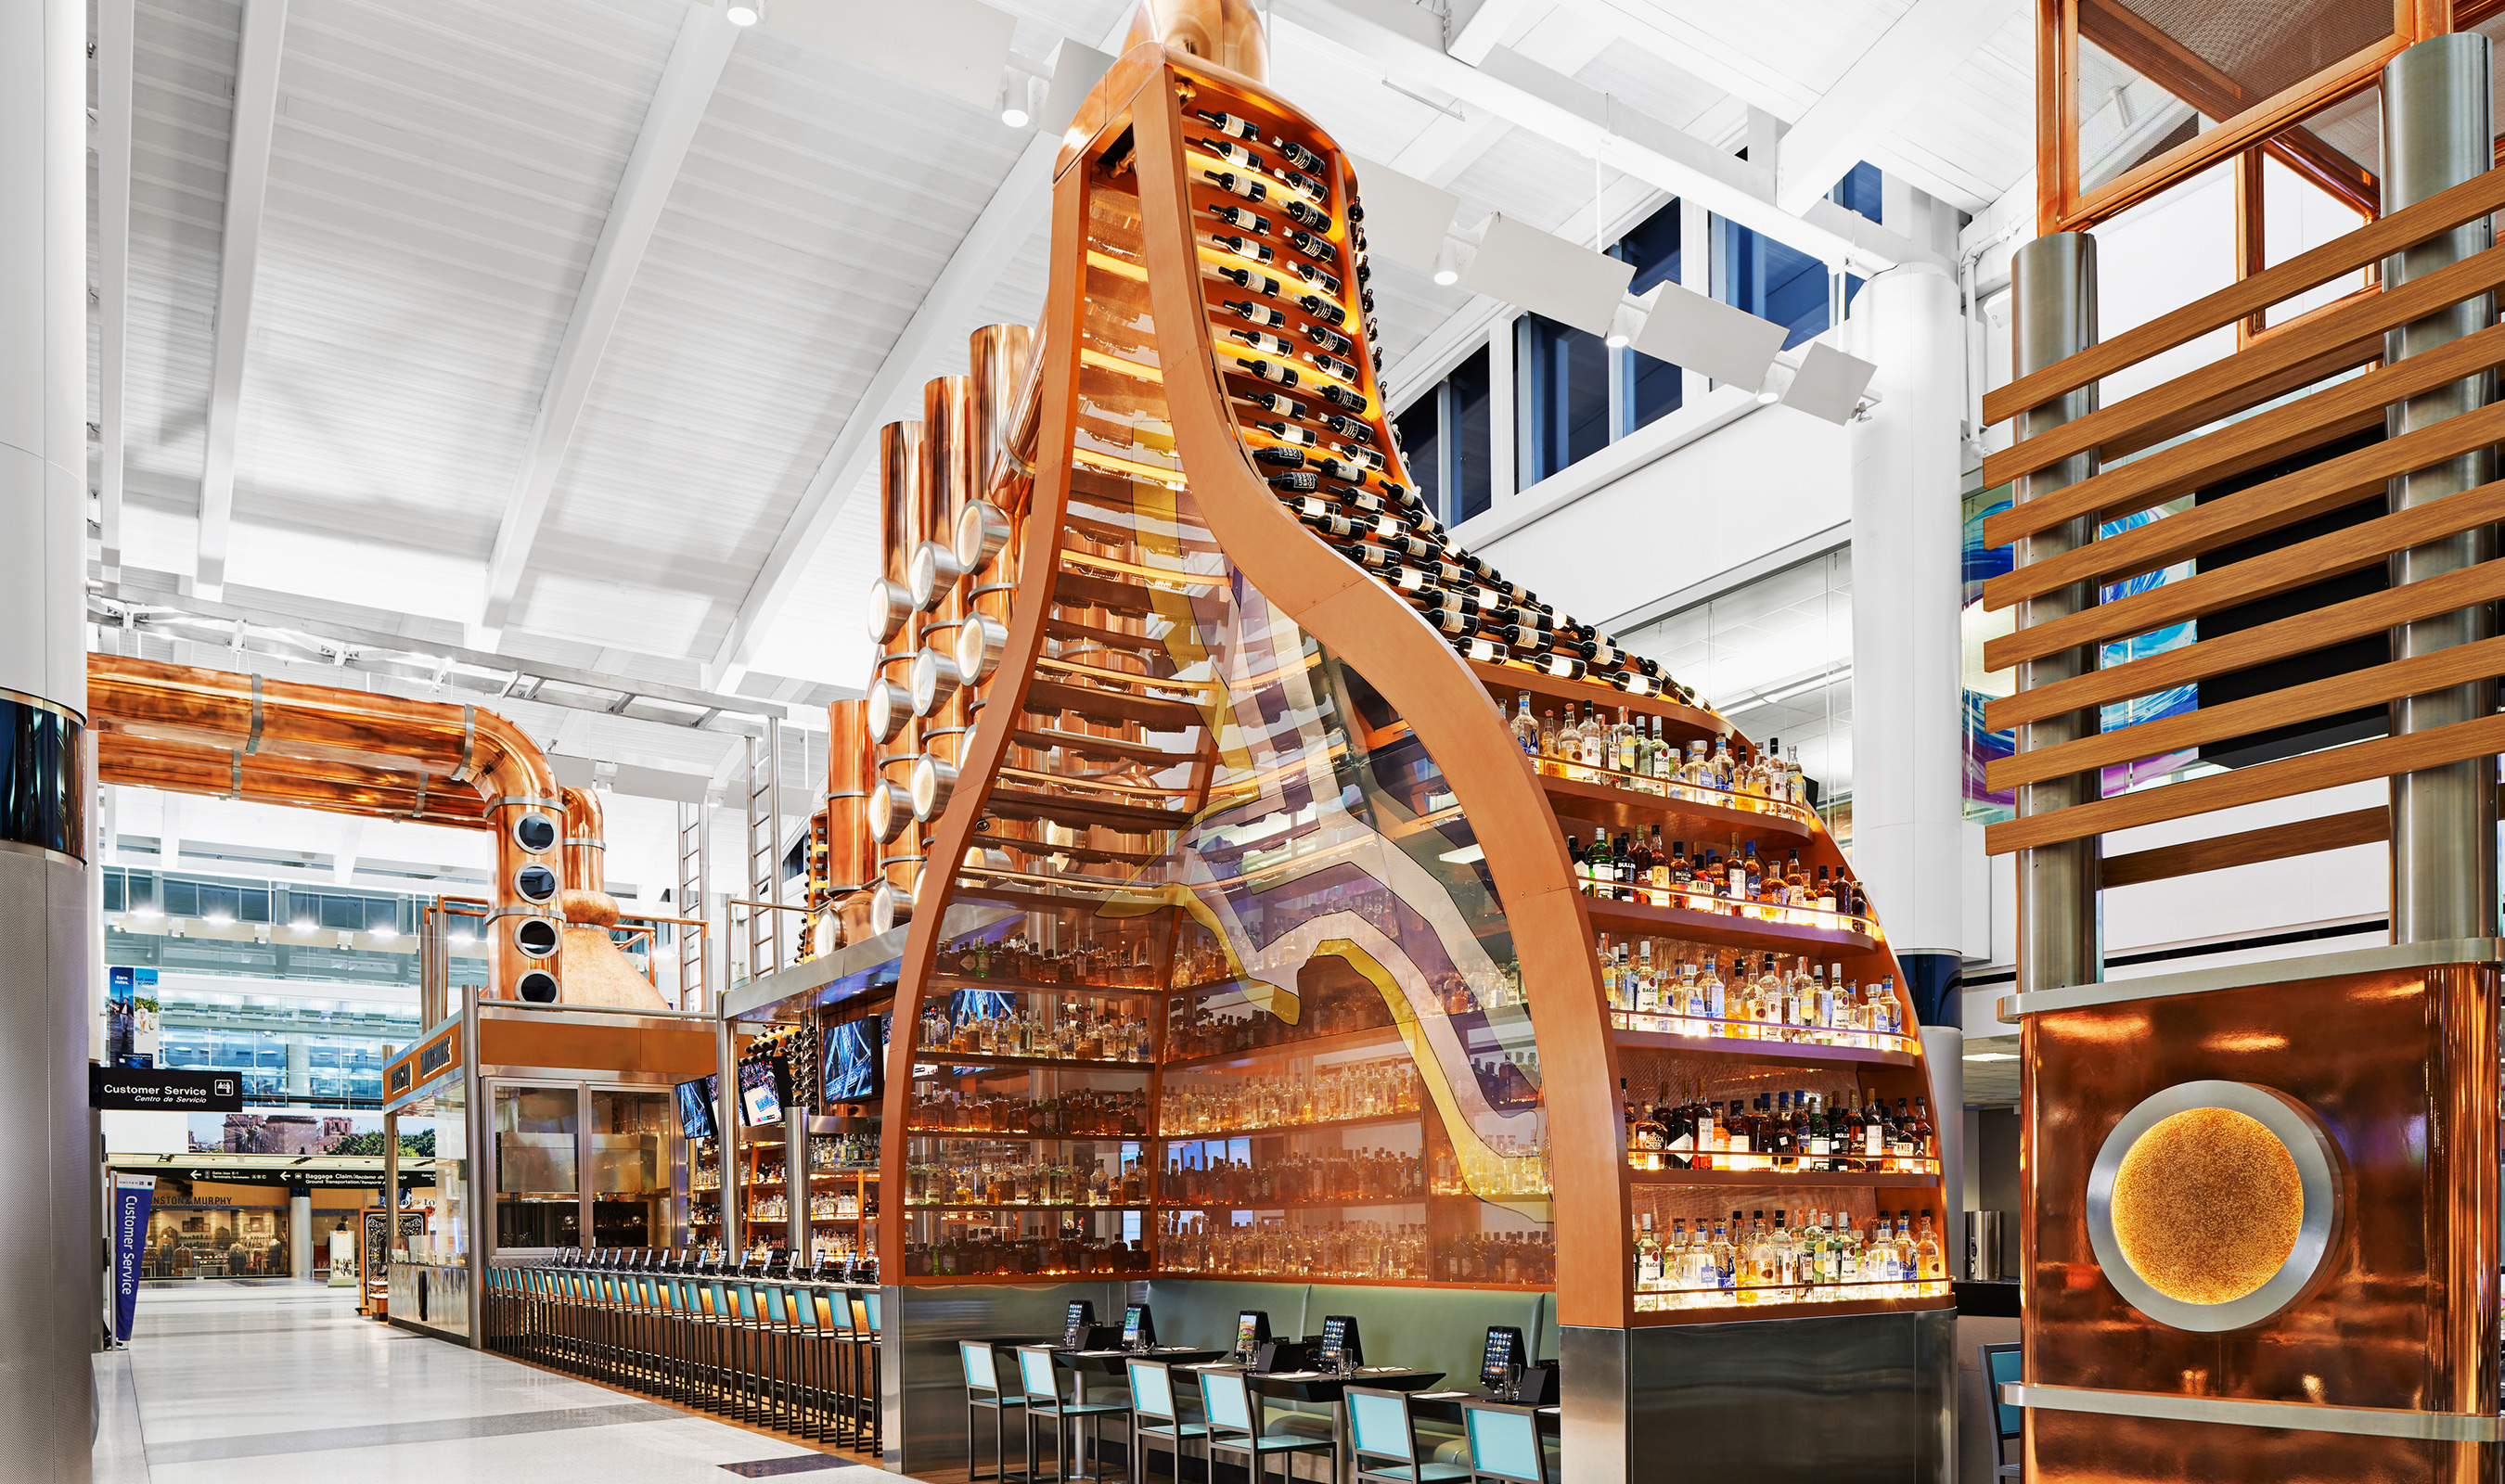 Design by Rockwell Group, the restaurant displays are reminiscent of brewery kettles.